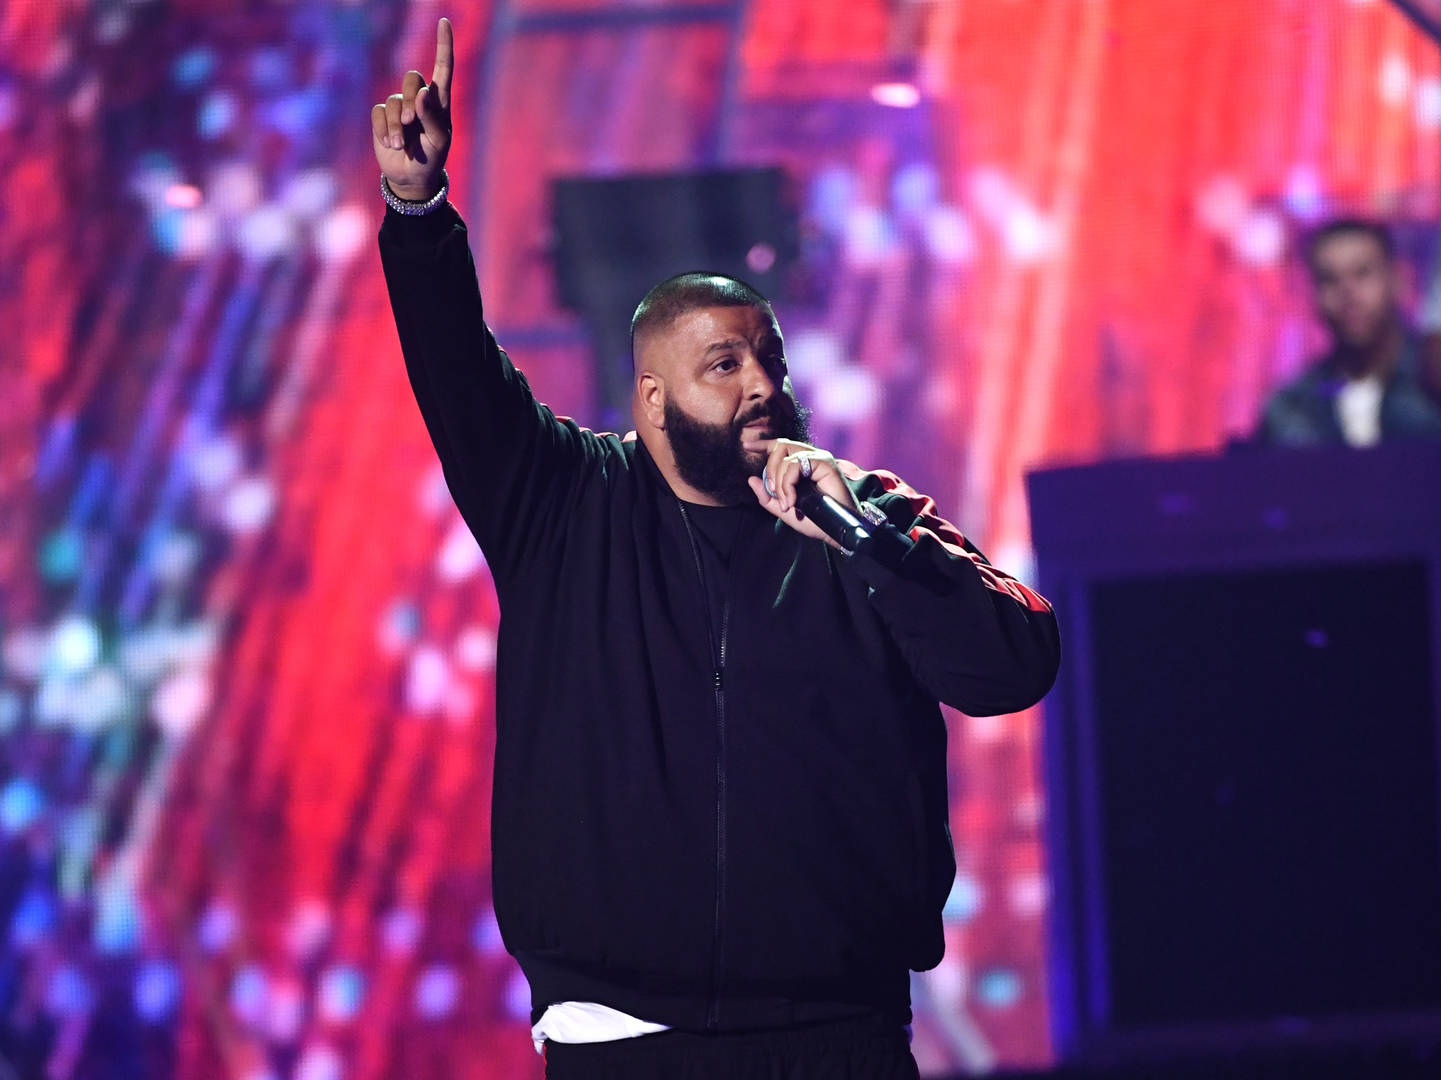 DJ Khaled Shows Off Iced Out Gifts From Jay-Z & Drake